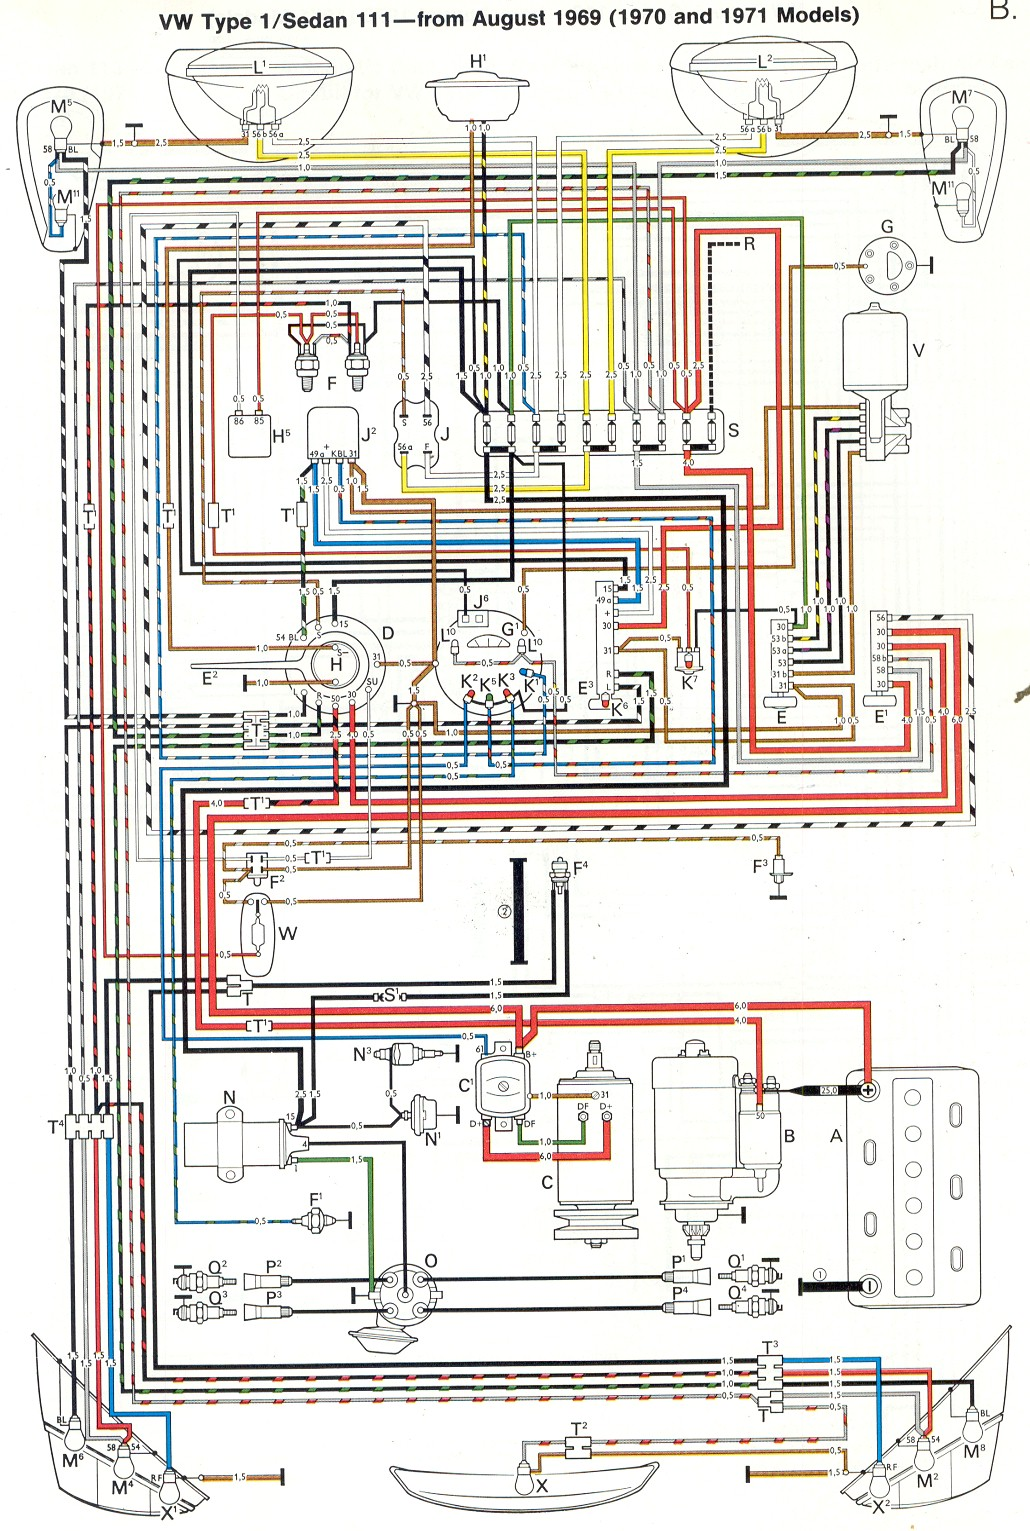 Vw Beetle Wiring Diagram : Vw beetle turn signal wiring diagram free engine